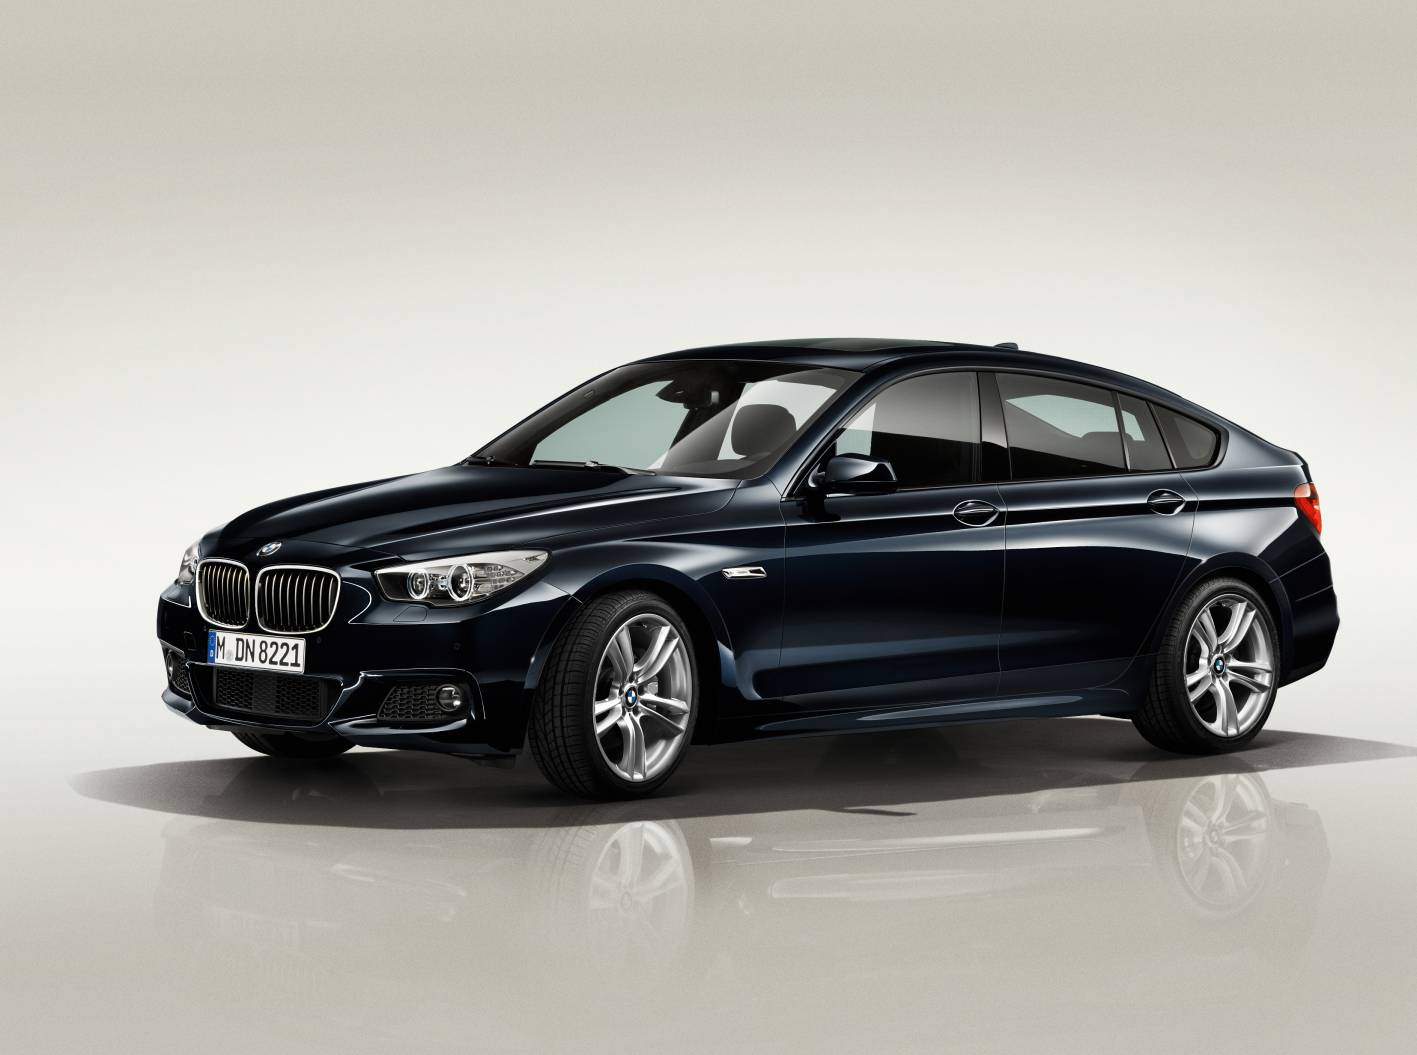 bmw 5 series gt refreshed with new 520d gt joining the range. Black Bedroom Furniture Sets. Home Design Ideas